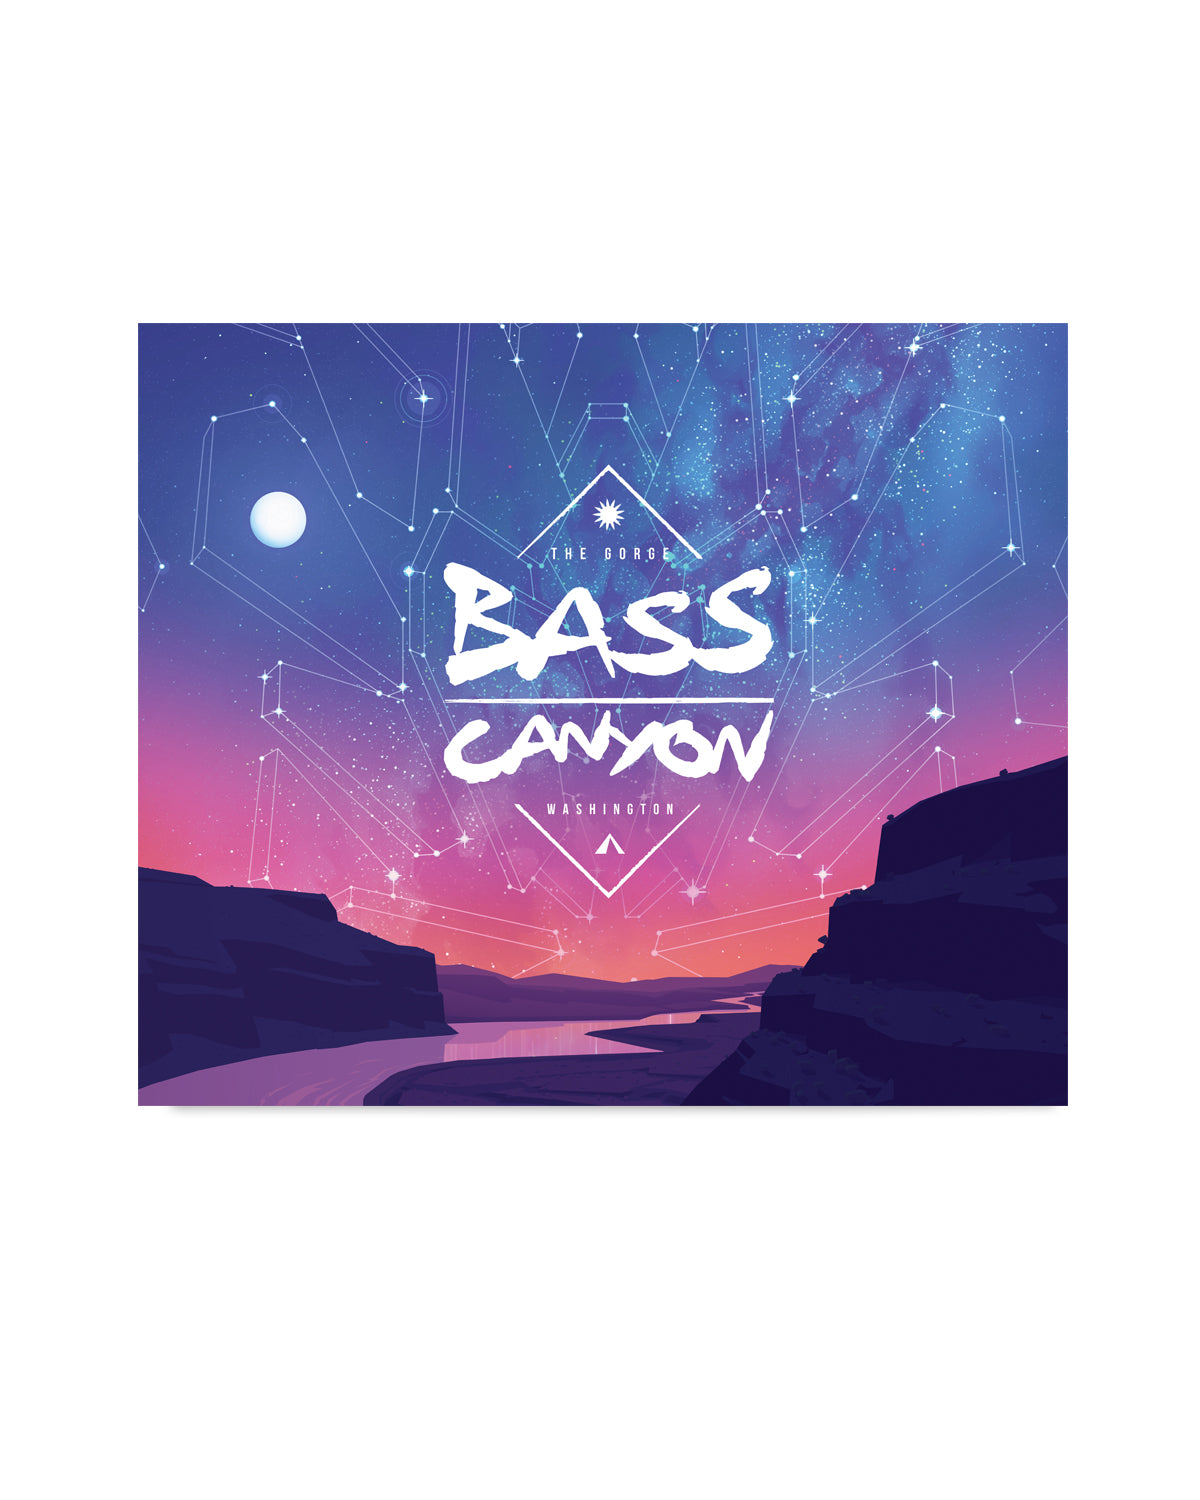 Bass Canyon Festival Blanket - 60